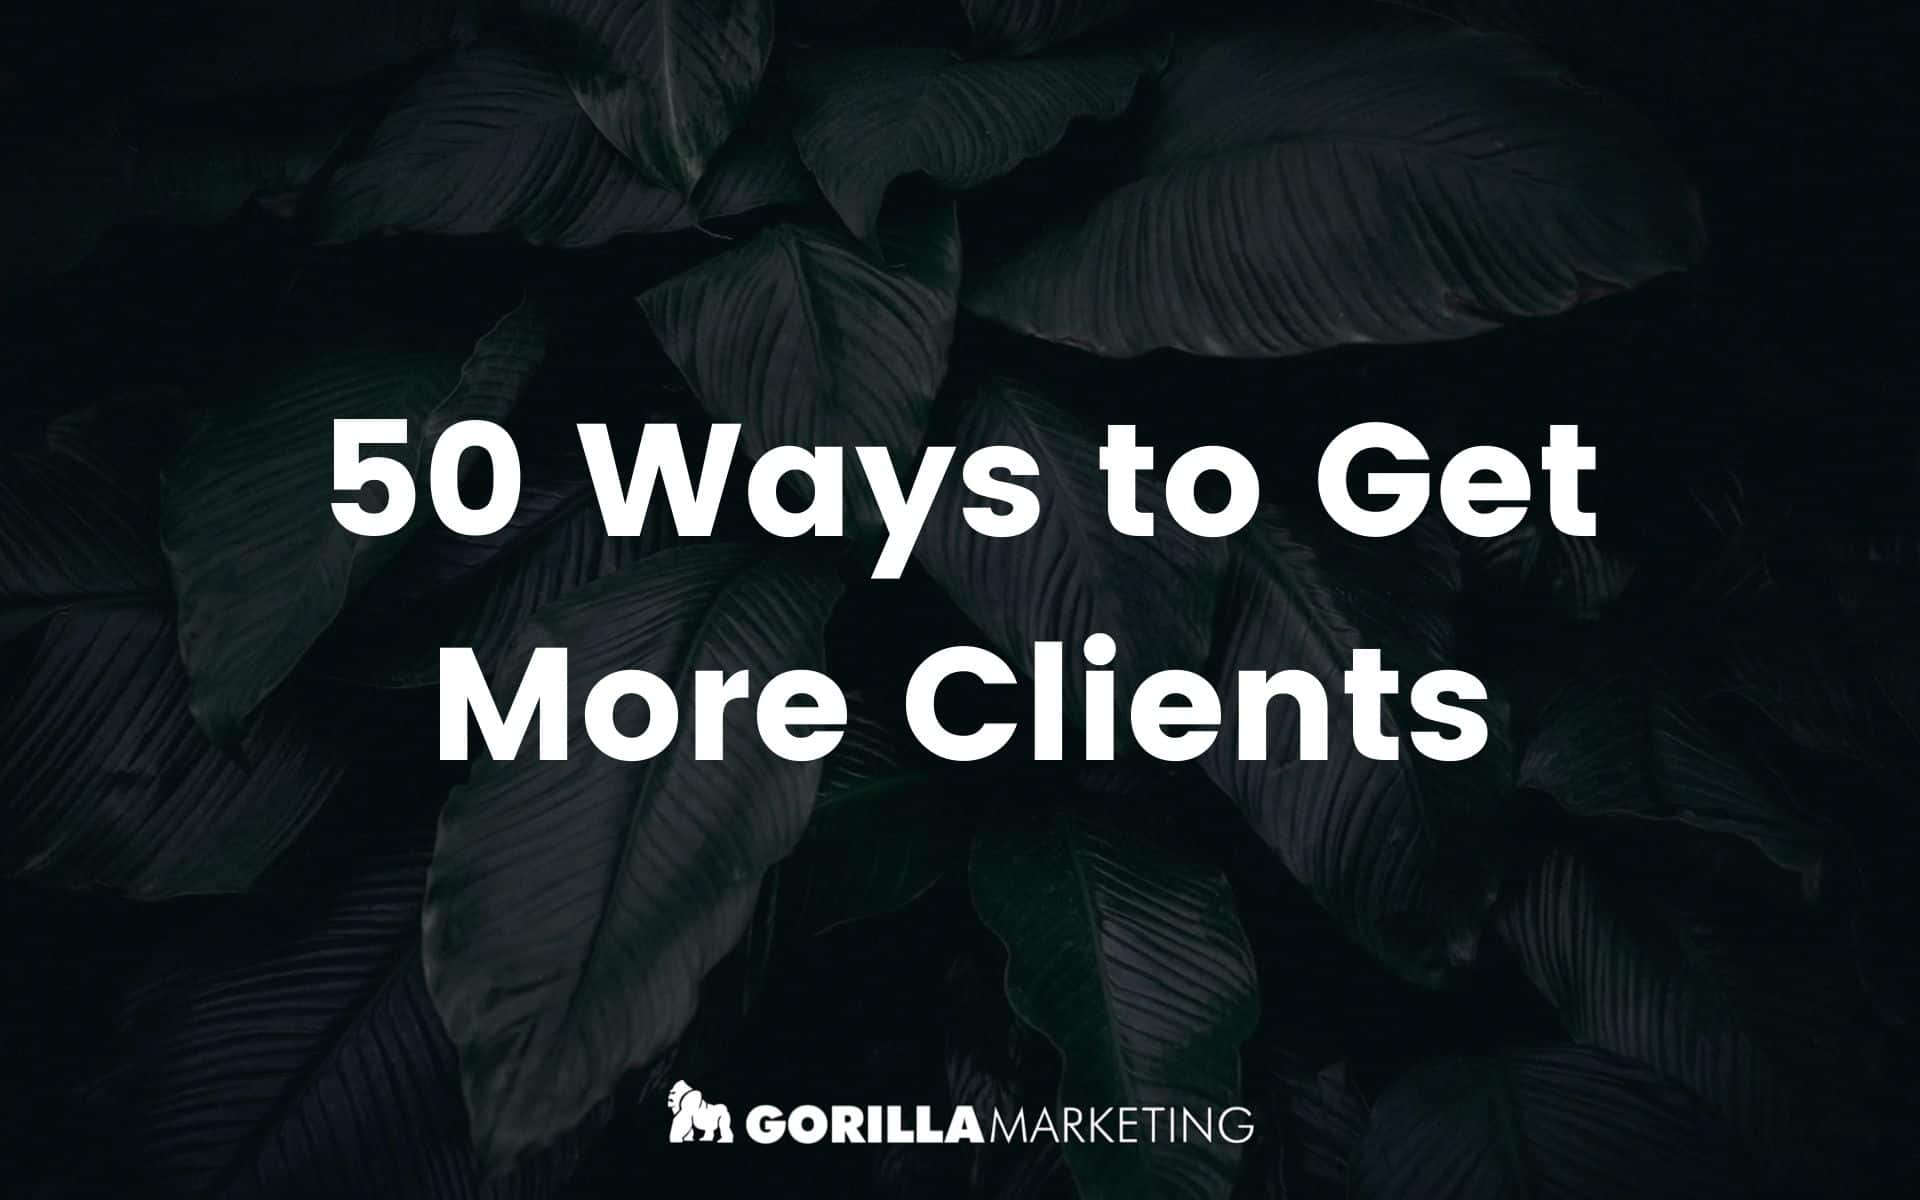 50 Ways to get more clients 1